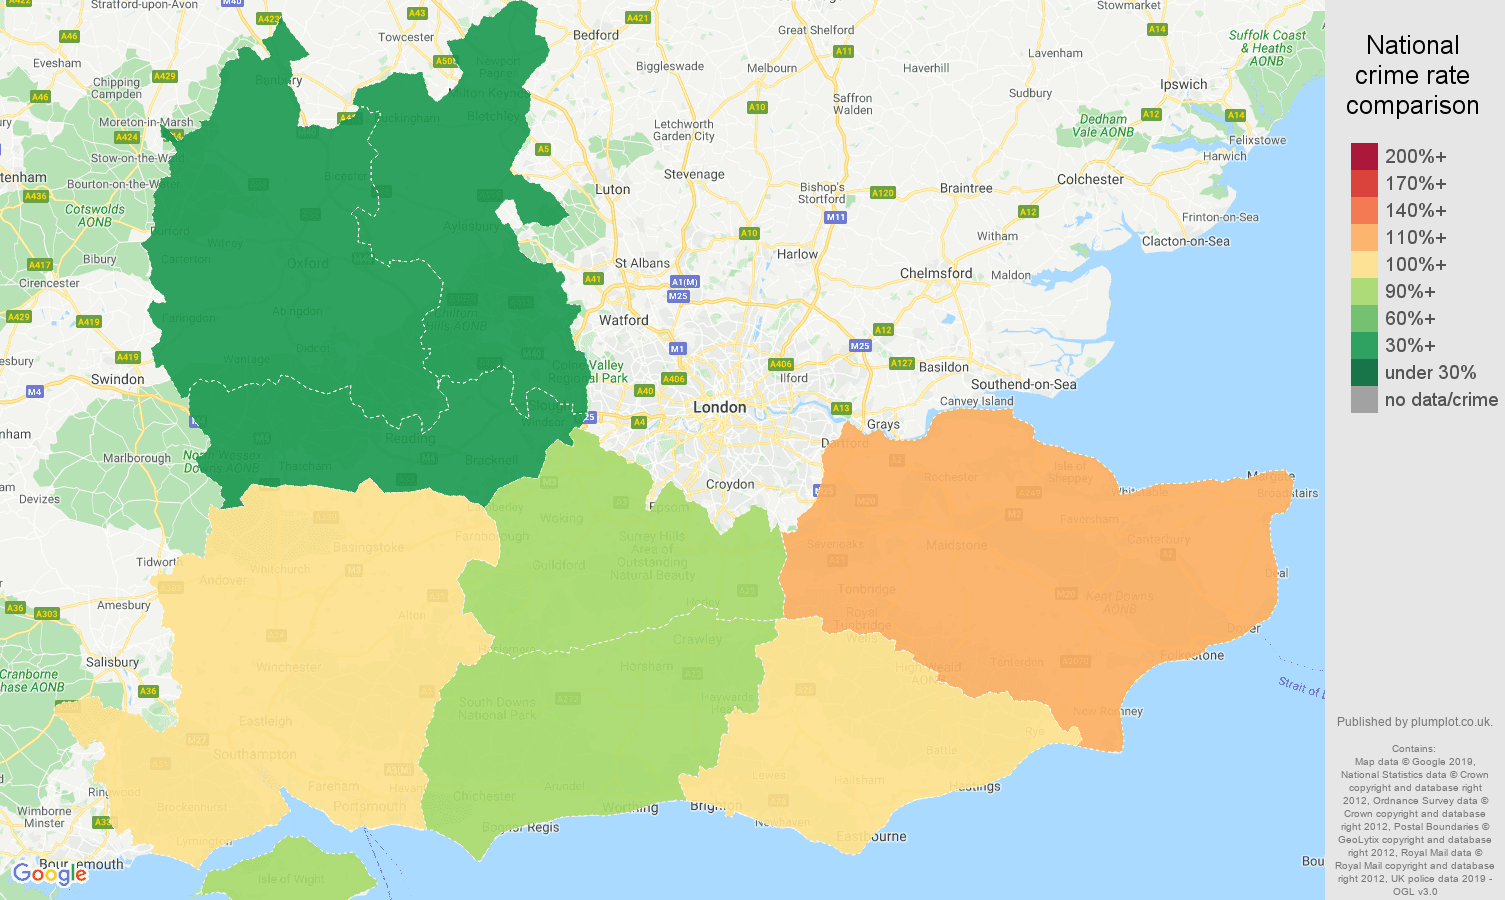 South East public order crime rate comparison map